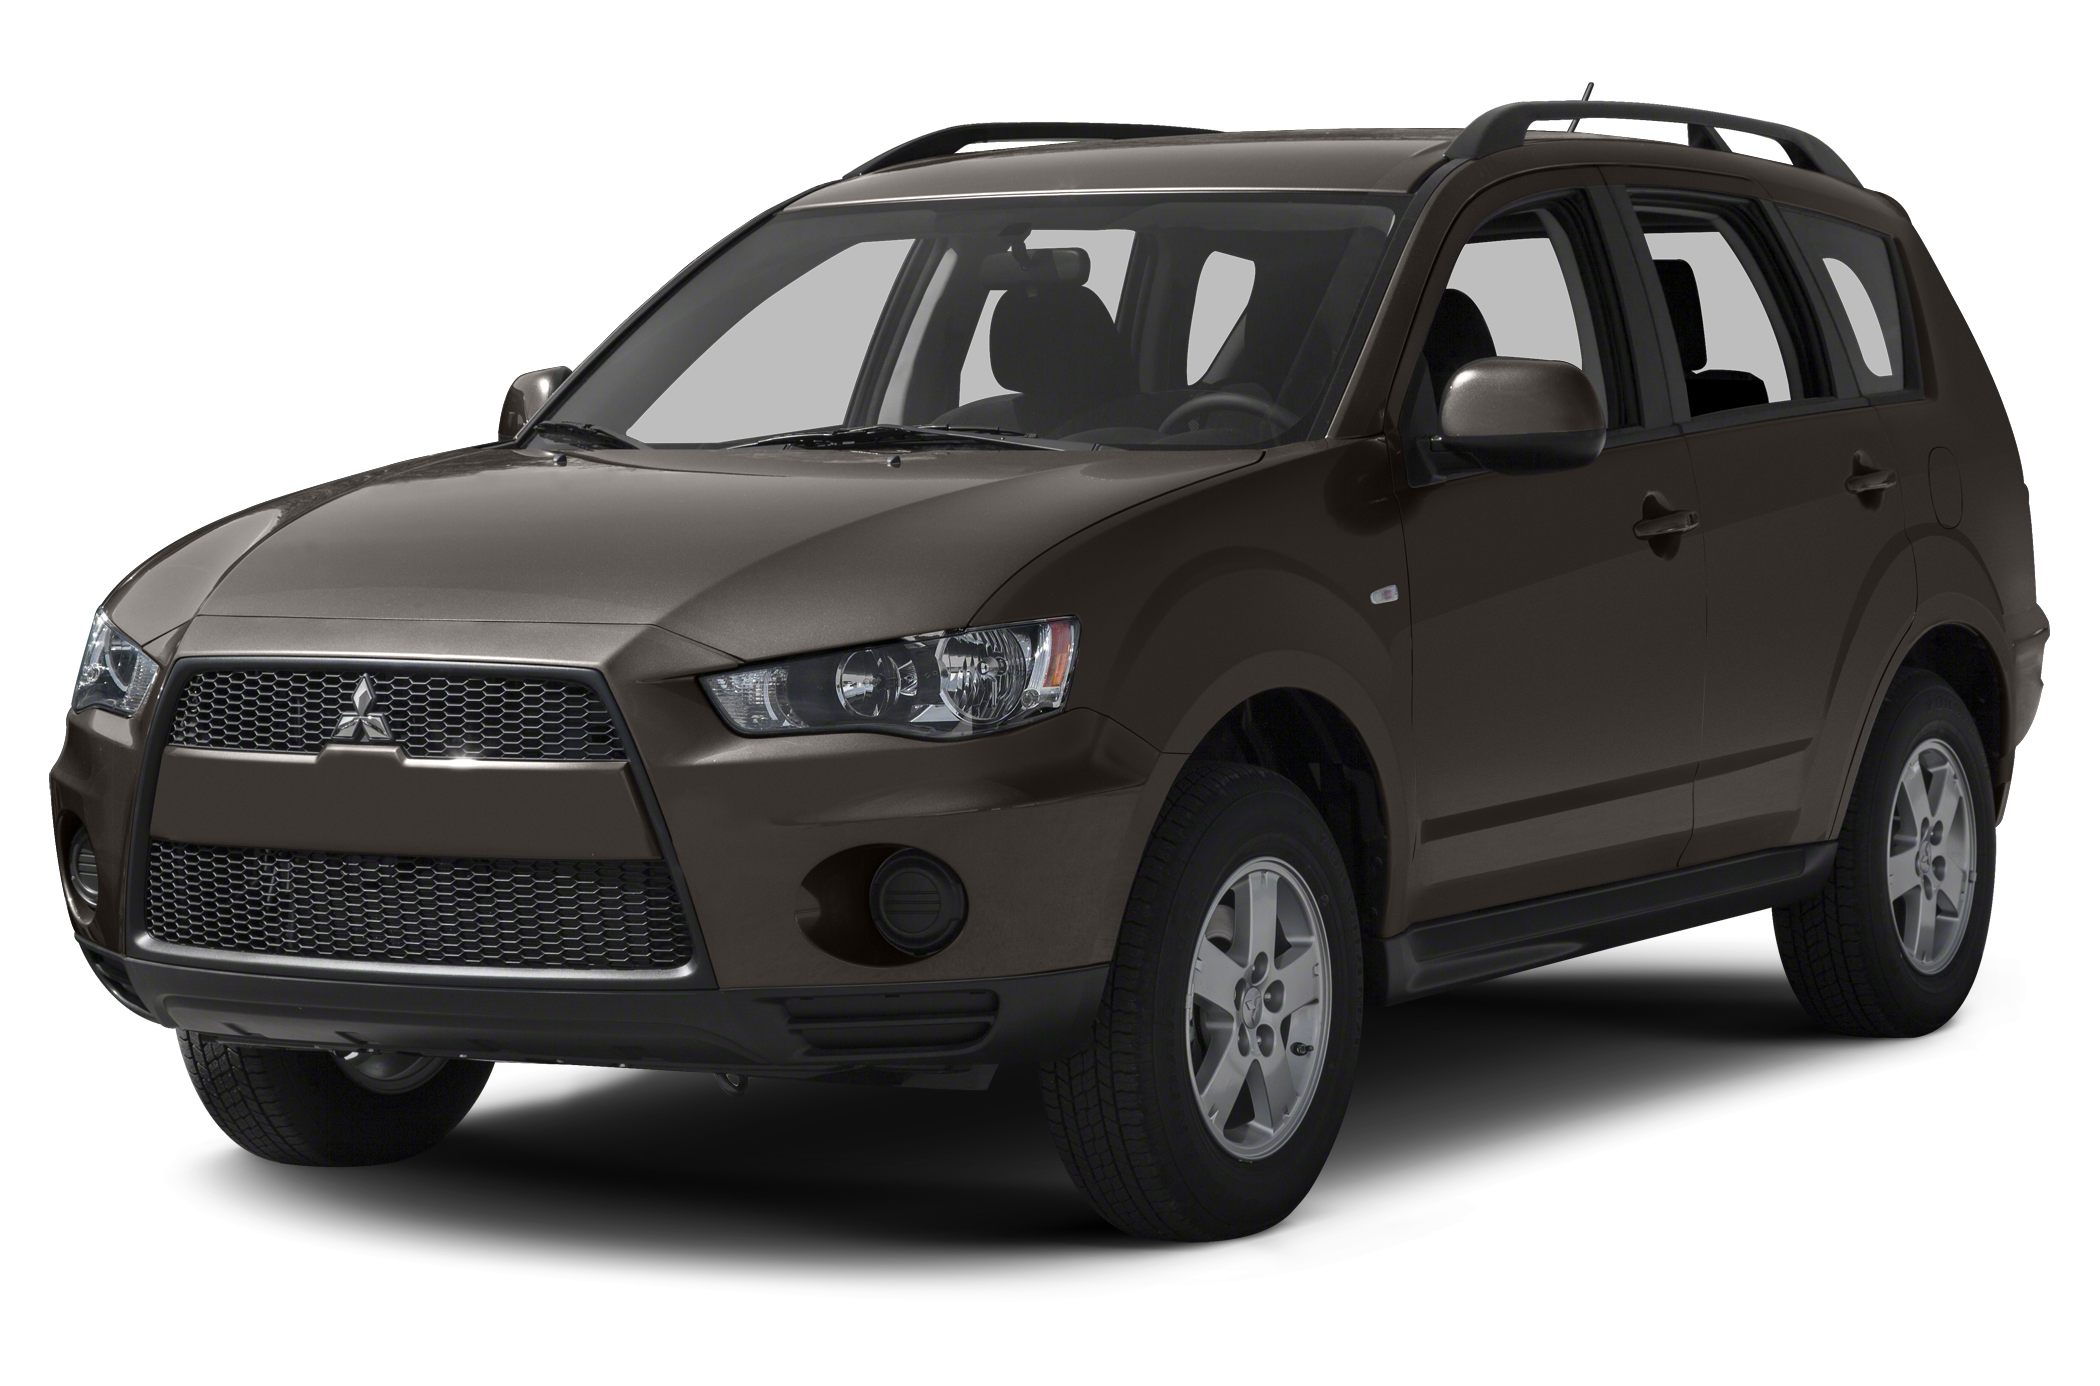 2013 Mitsubishi Outlander SE This price is only available for a buyer who obtains an auto loan thr